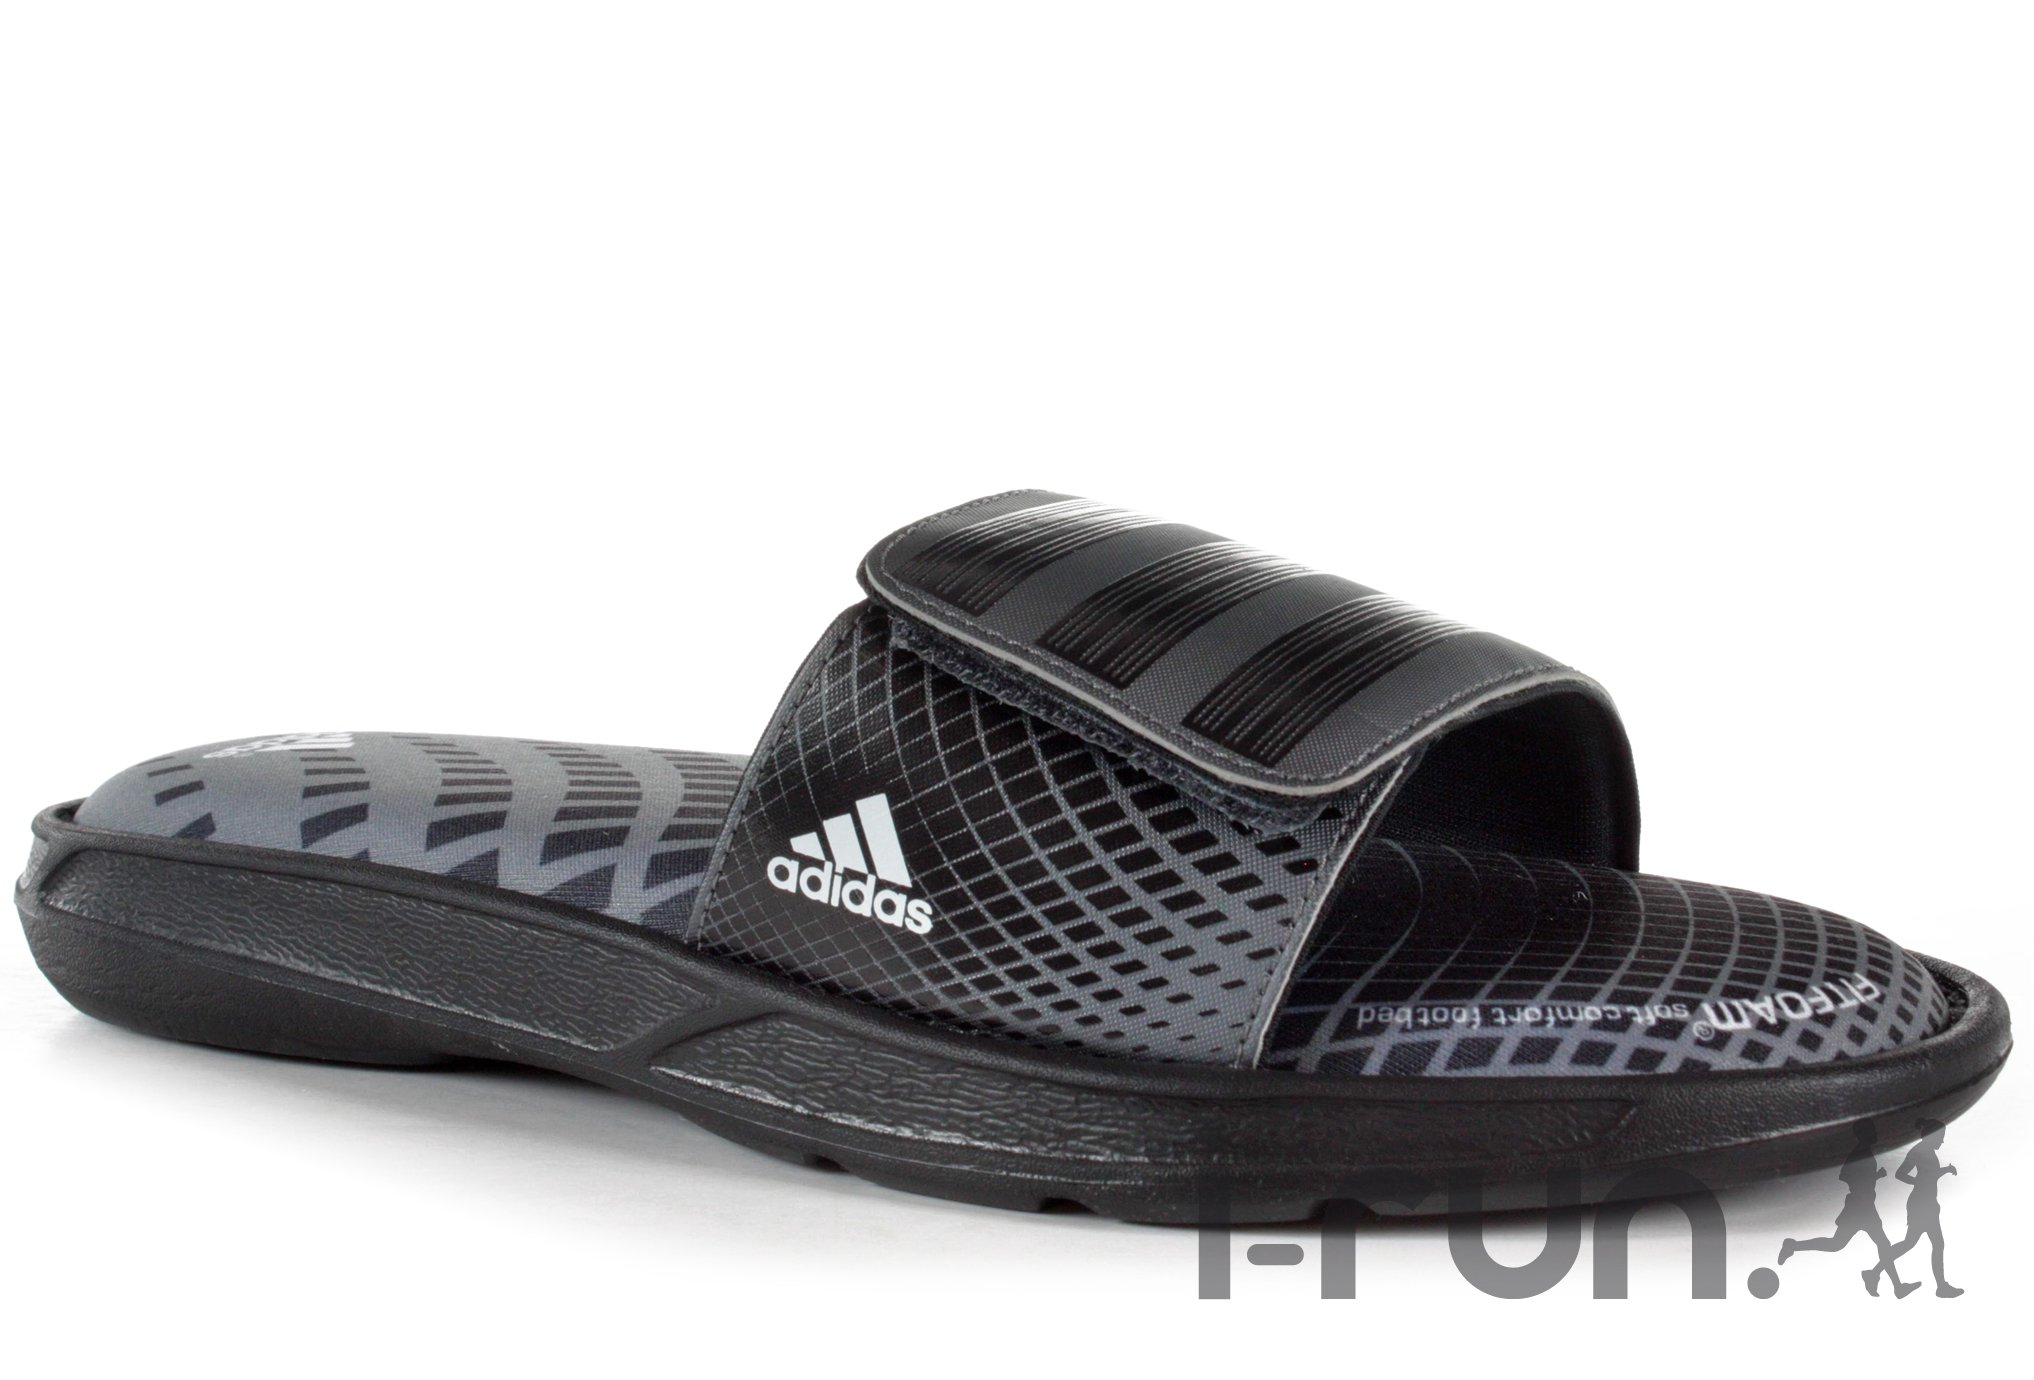 adidas claquette homme,sandale adidas Adidas Performance